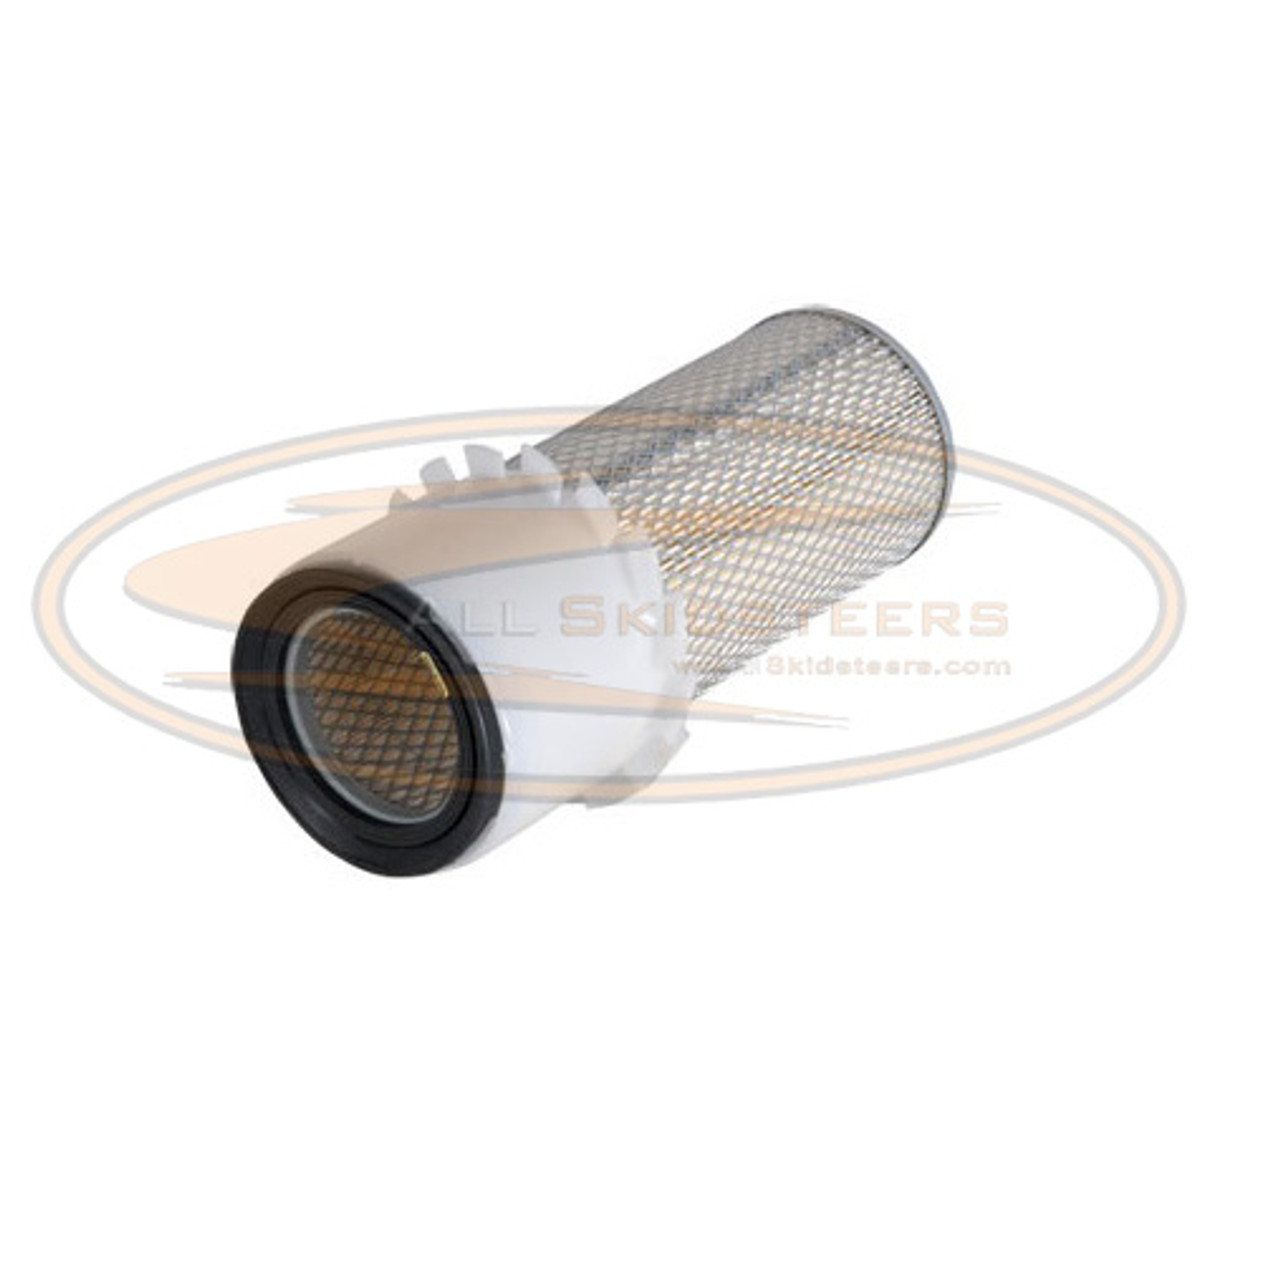 Engine Air Filter Outer for Mustang Skid Steers Loaders 320 322 345 42018567